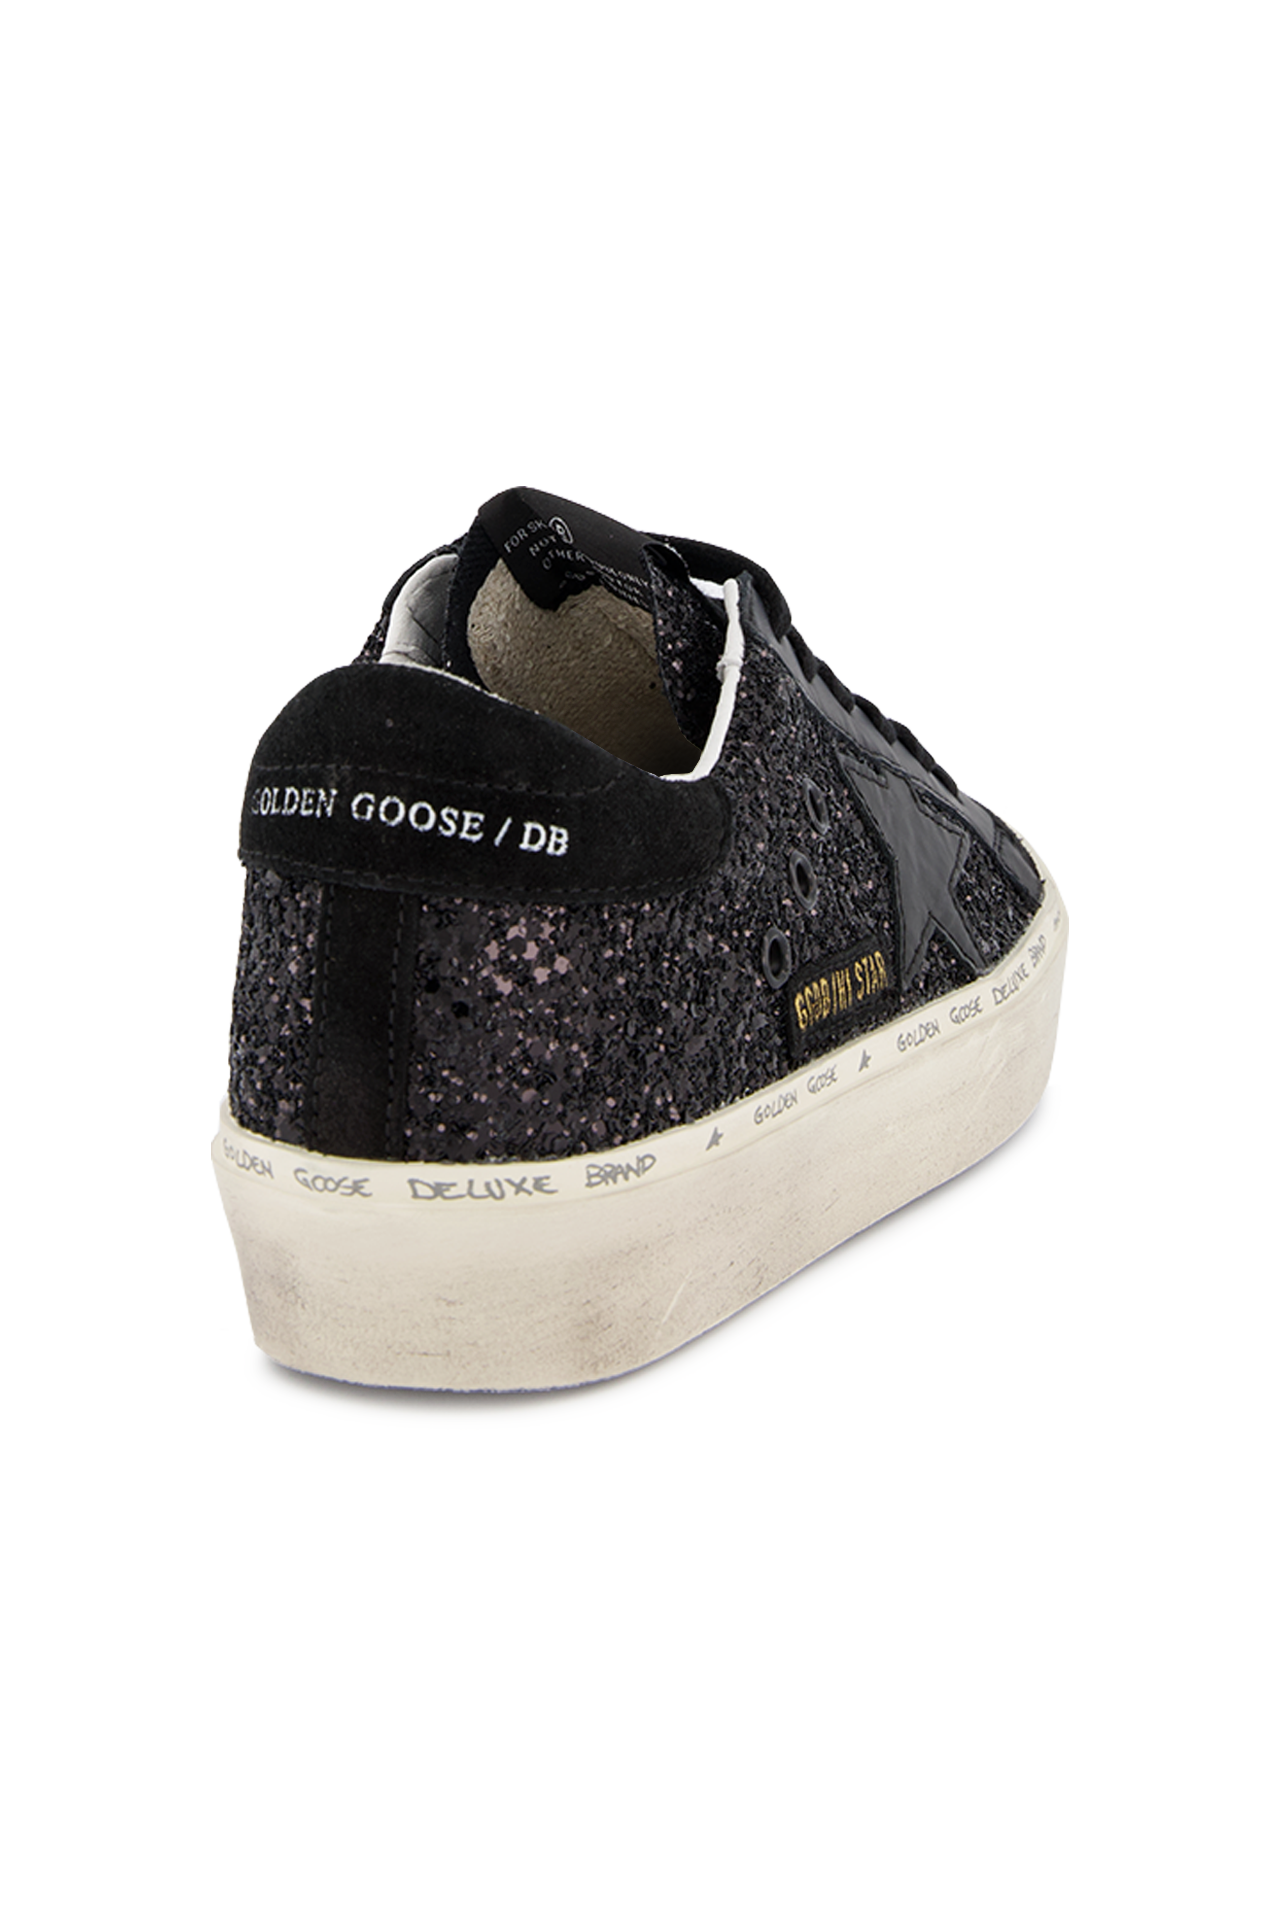 Heel Detail Image of Golden Goose Hi Star Sneaker Black Glitter